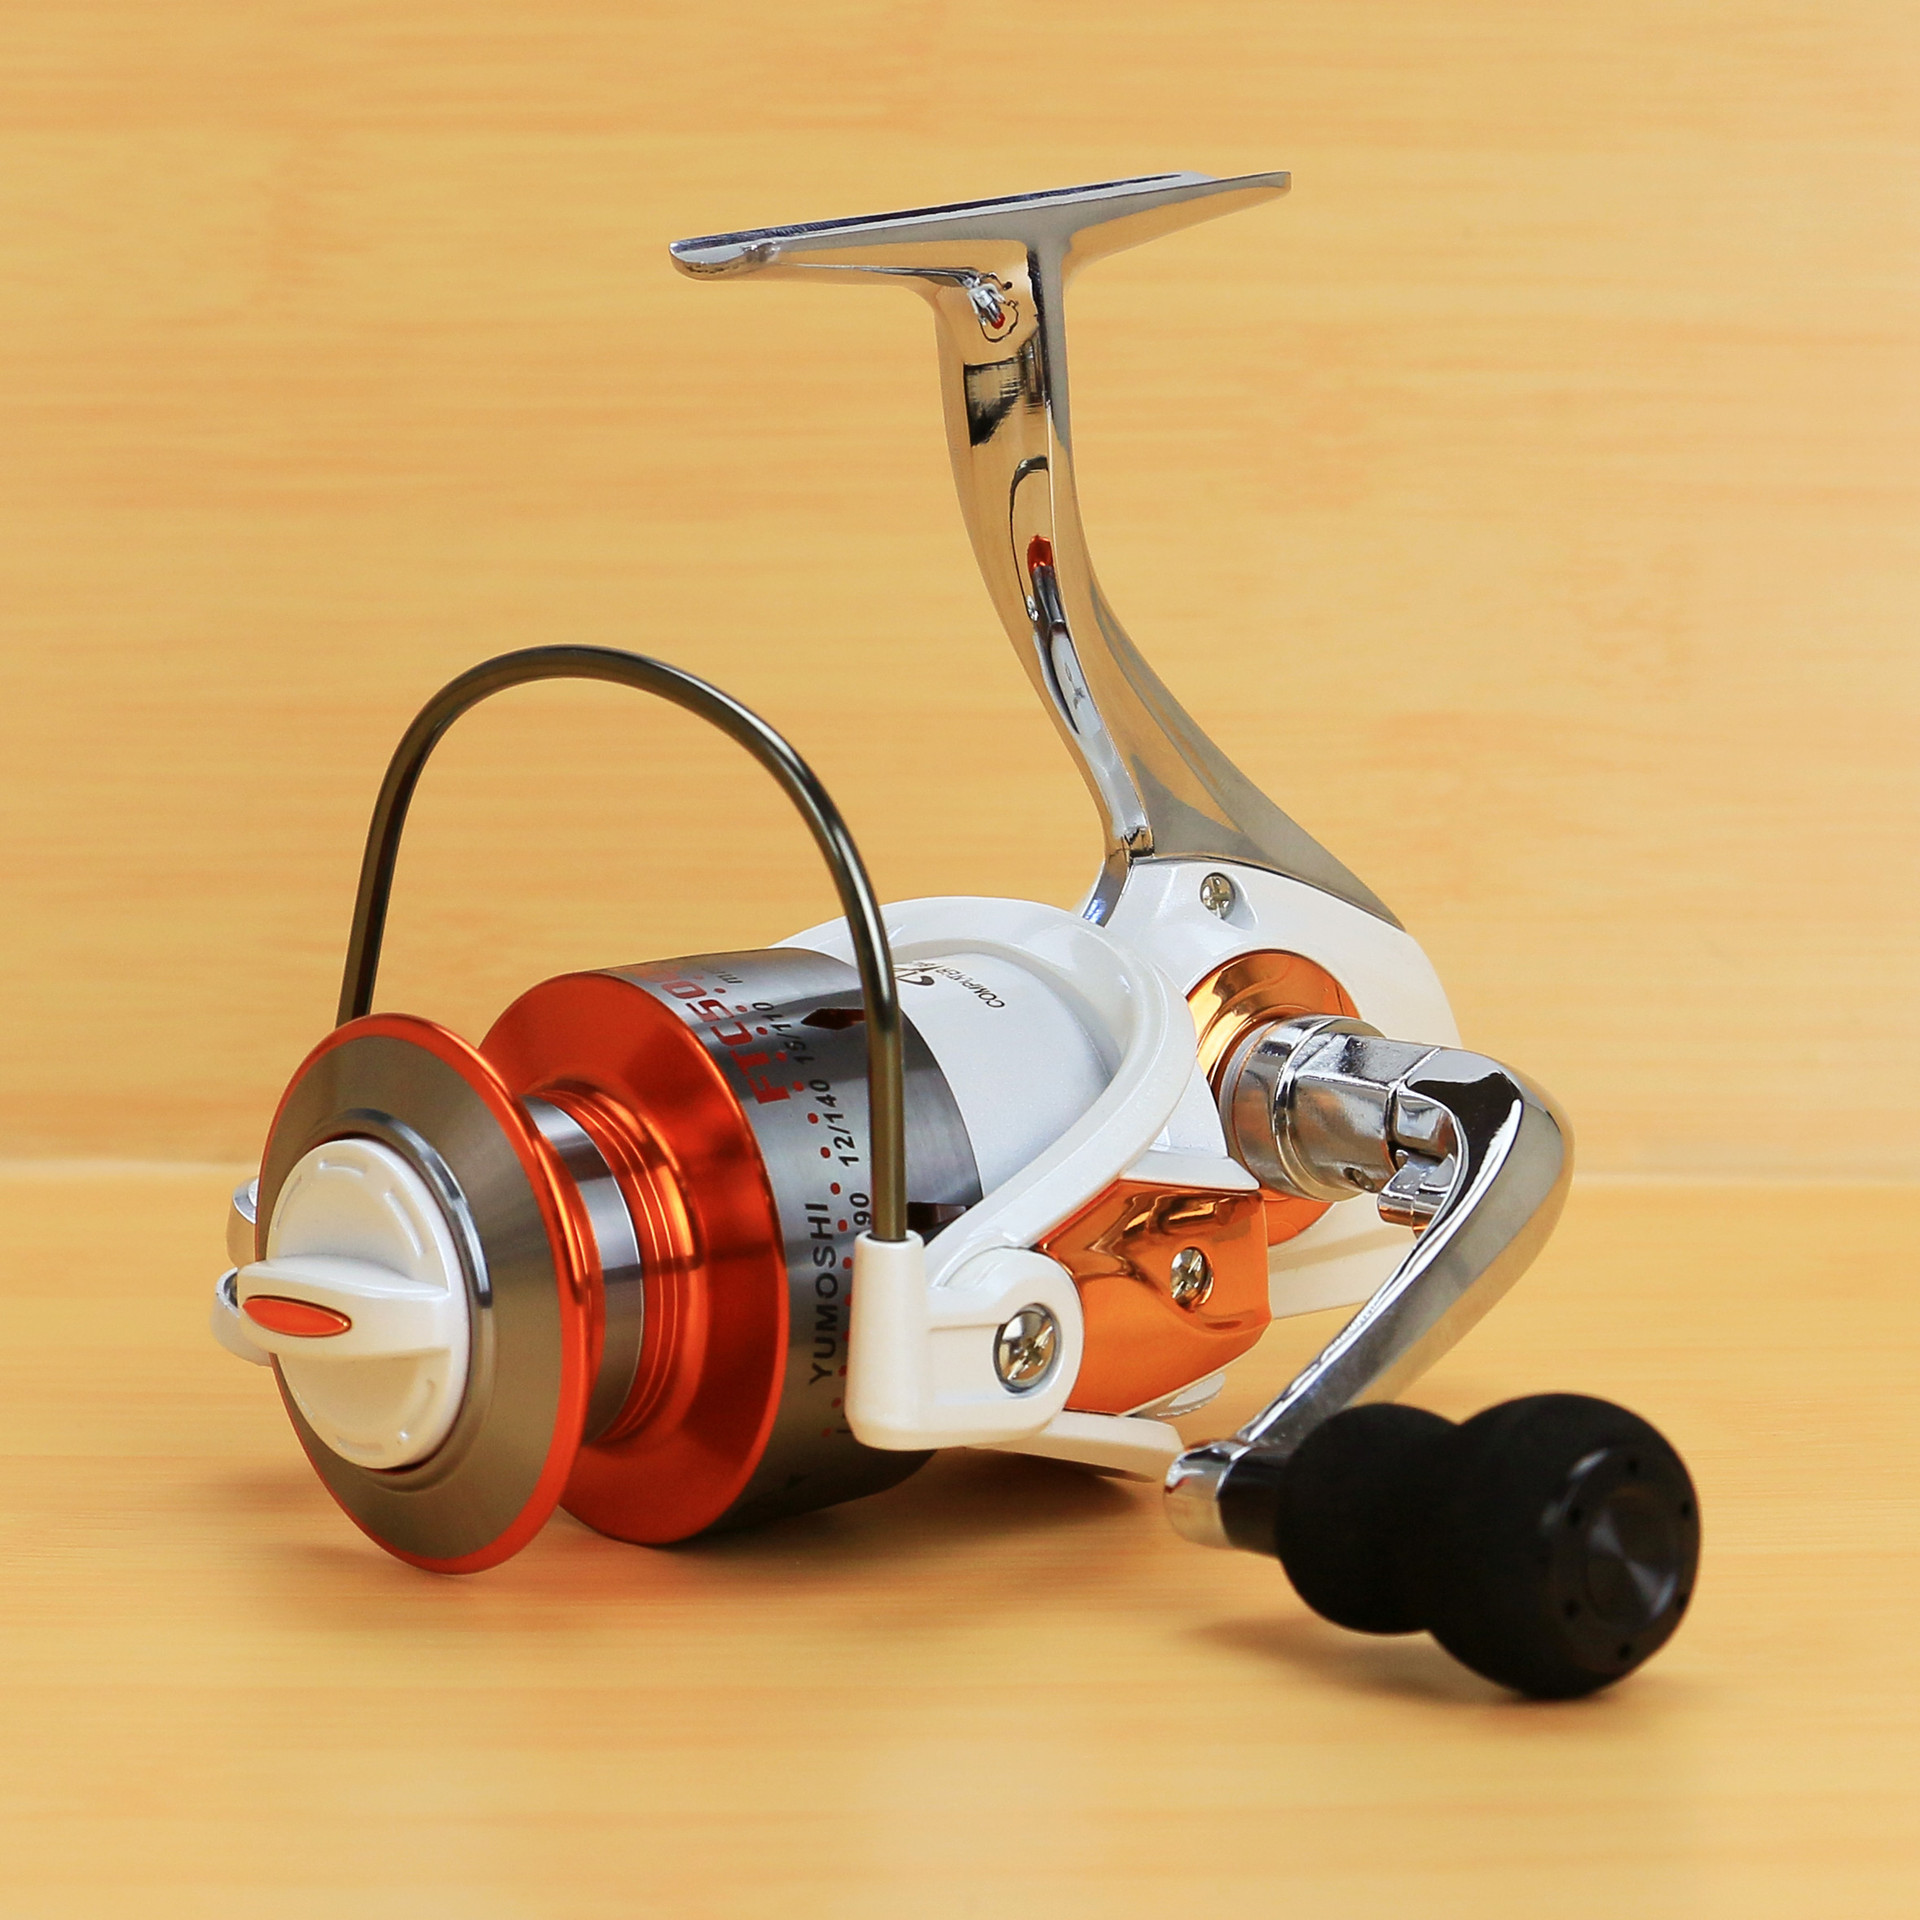 Thanksgiving Updated Quality FTC 3000-7000 11BB 5.2:1 Metal Spinning Fishing Reel Carp Fishing Wheel Spinning Reel ...